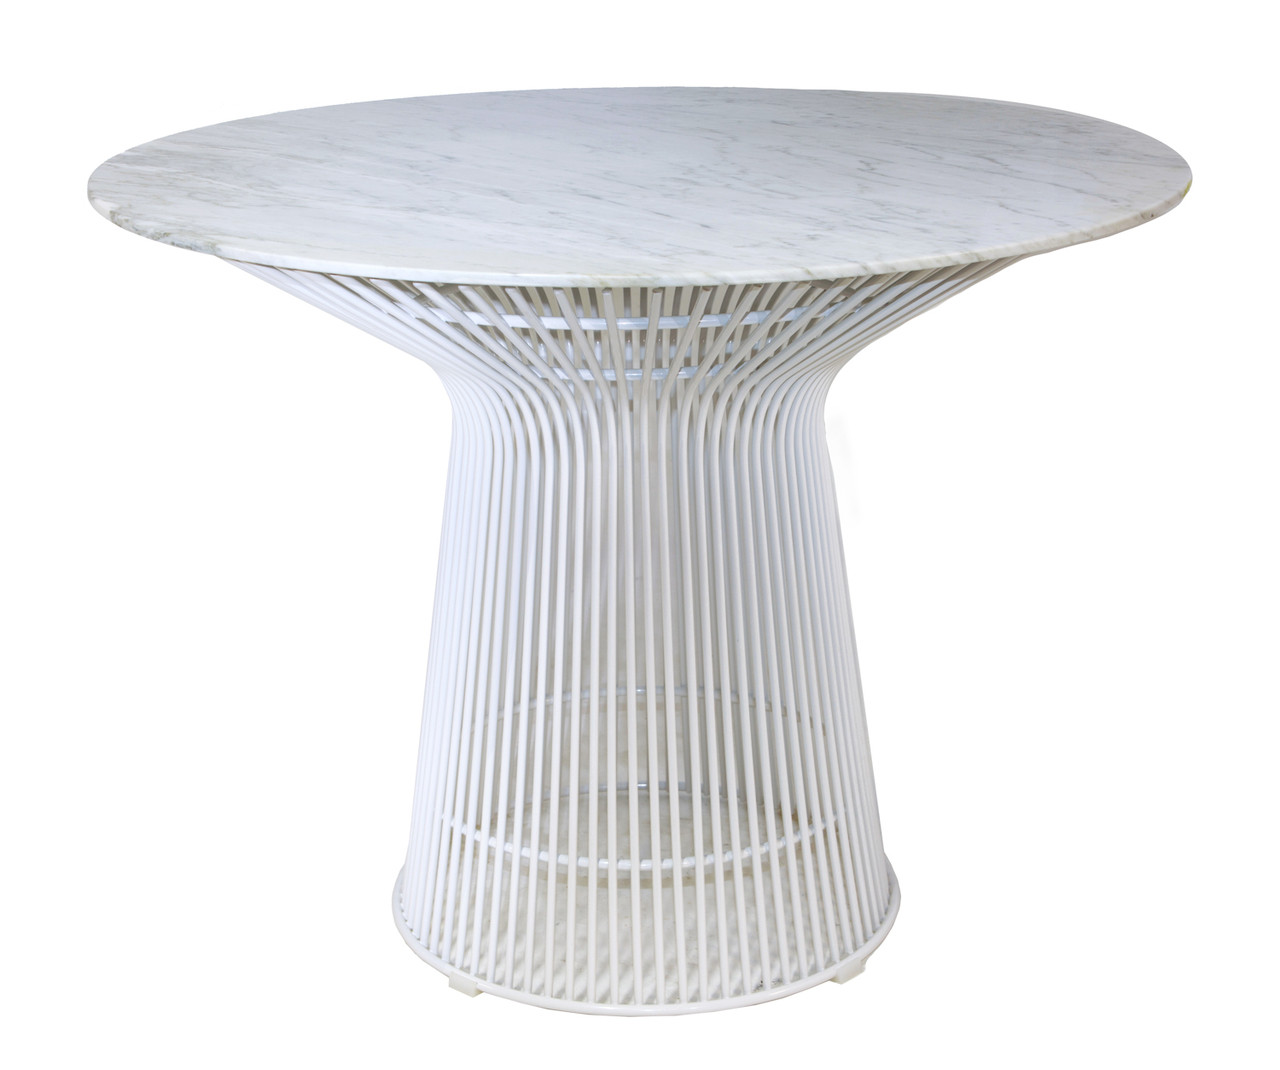 Replica Warren Platner - Wire Dining Table - White Powdercoated - Marble Top - 120cm